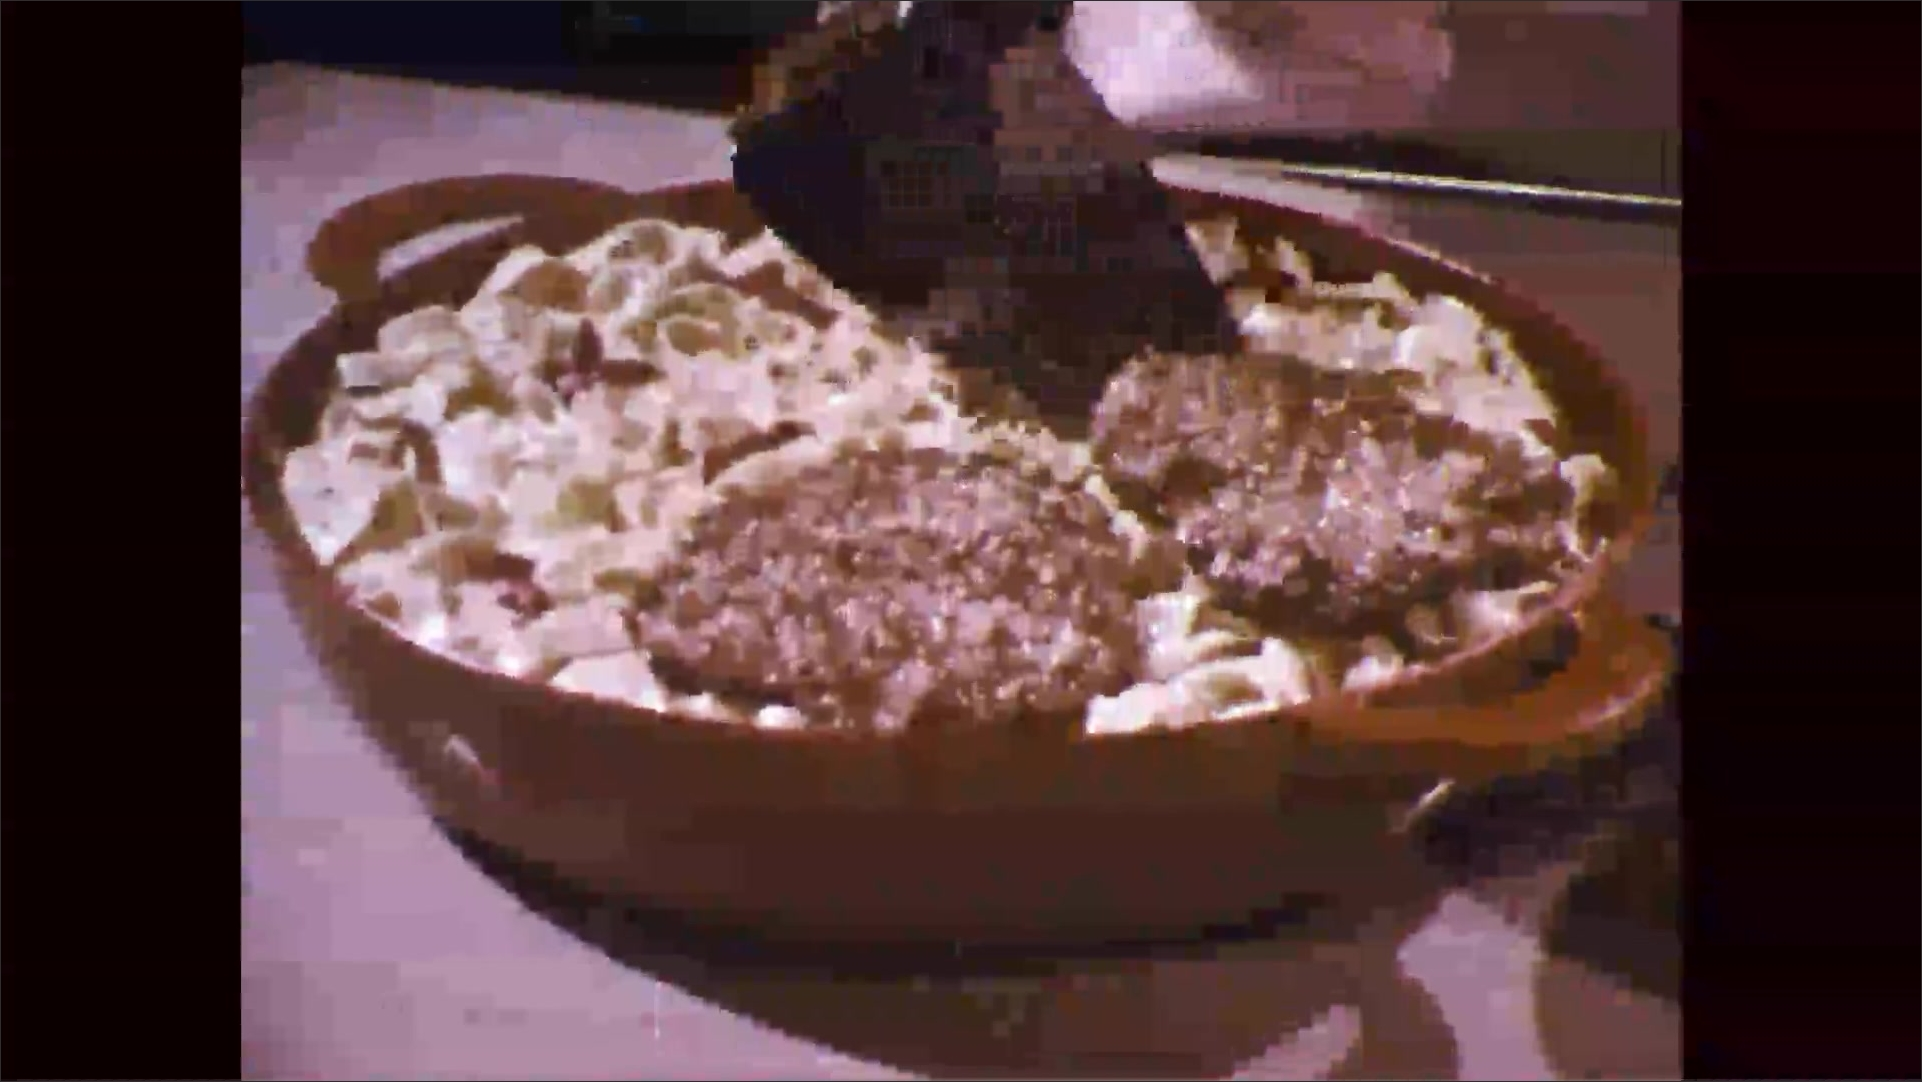 1960s: Woman takes porklets out of pan, places them on top of noodles in dish. Woman places dish of noodles and pork onto placemat.